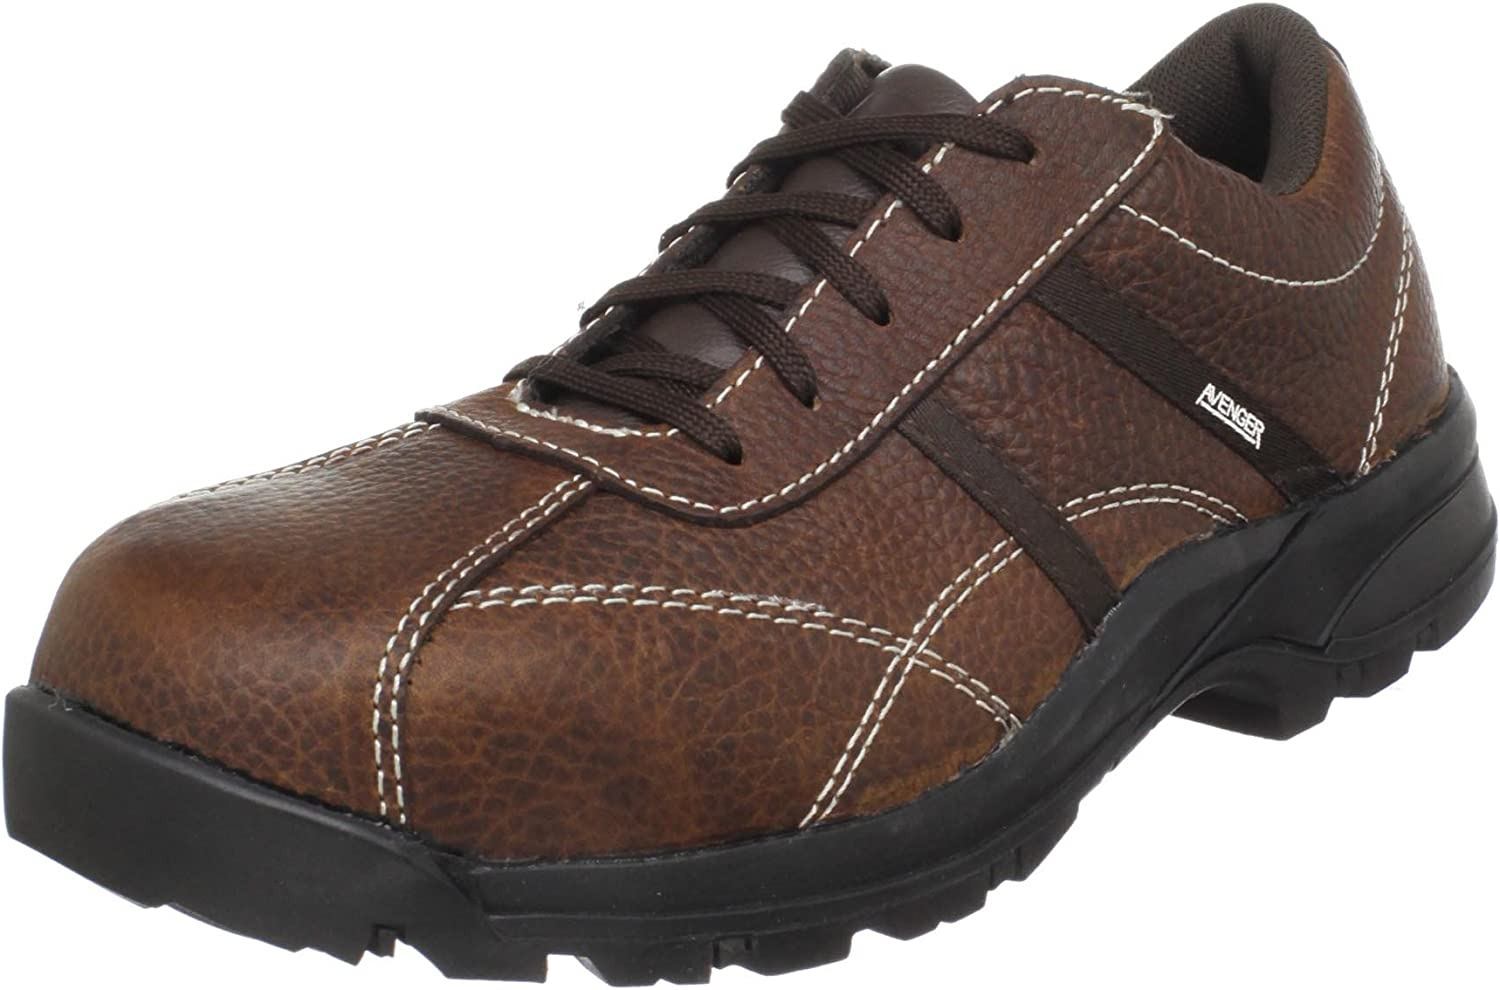 Avenger Work Boots A7150 Women's Safety Work Shoes, 10 W